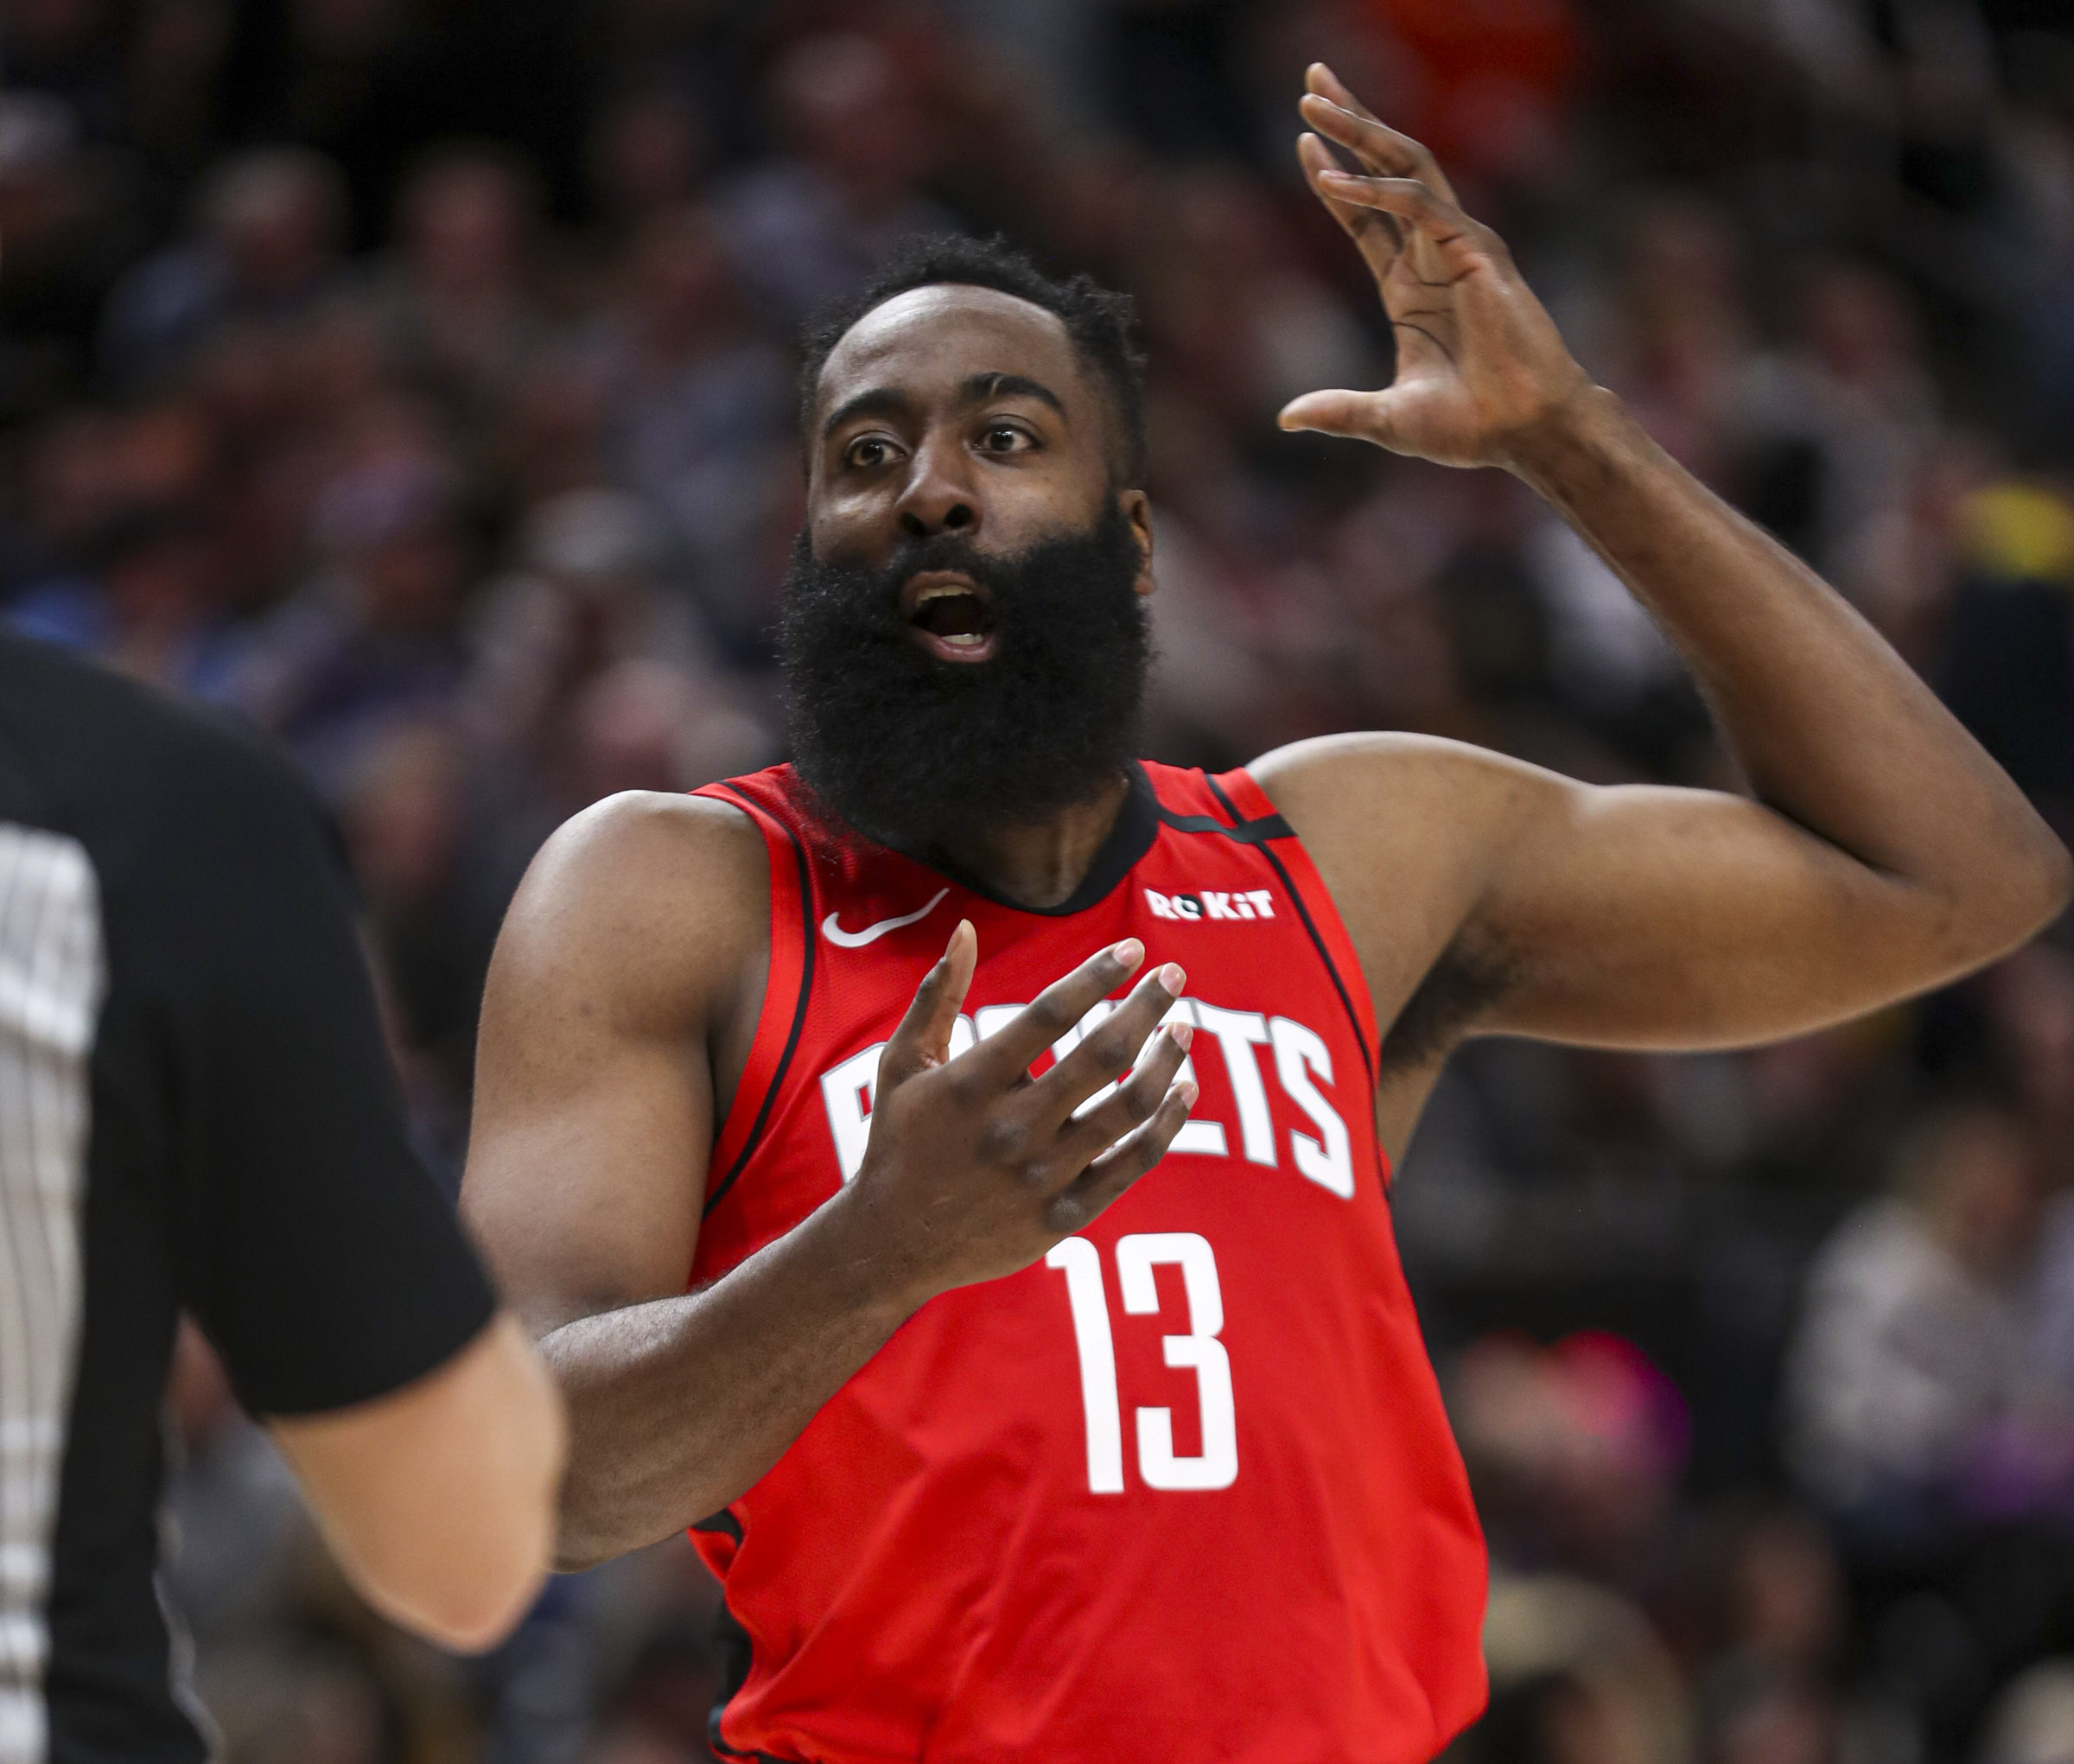 Houston Rockets guard James Harden (13) gestures to the referee that he was fouled during the Houston Rockets at Utah Jazz NBA basketball game at Vivint Arena in Salt Lake City on Saturday, Feb. 22, 2020.